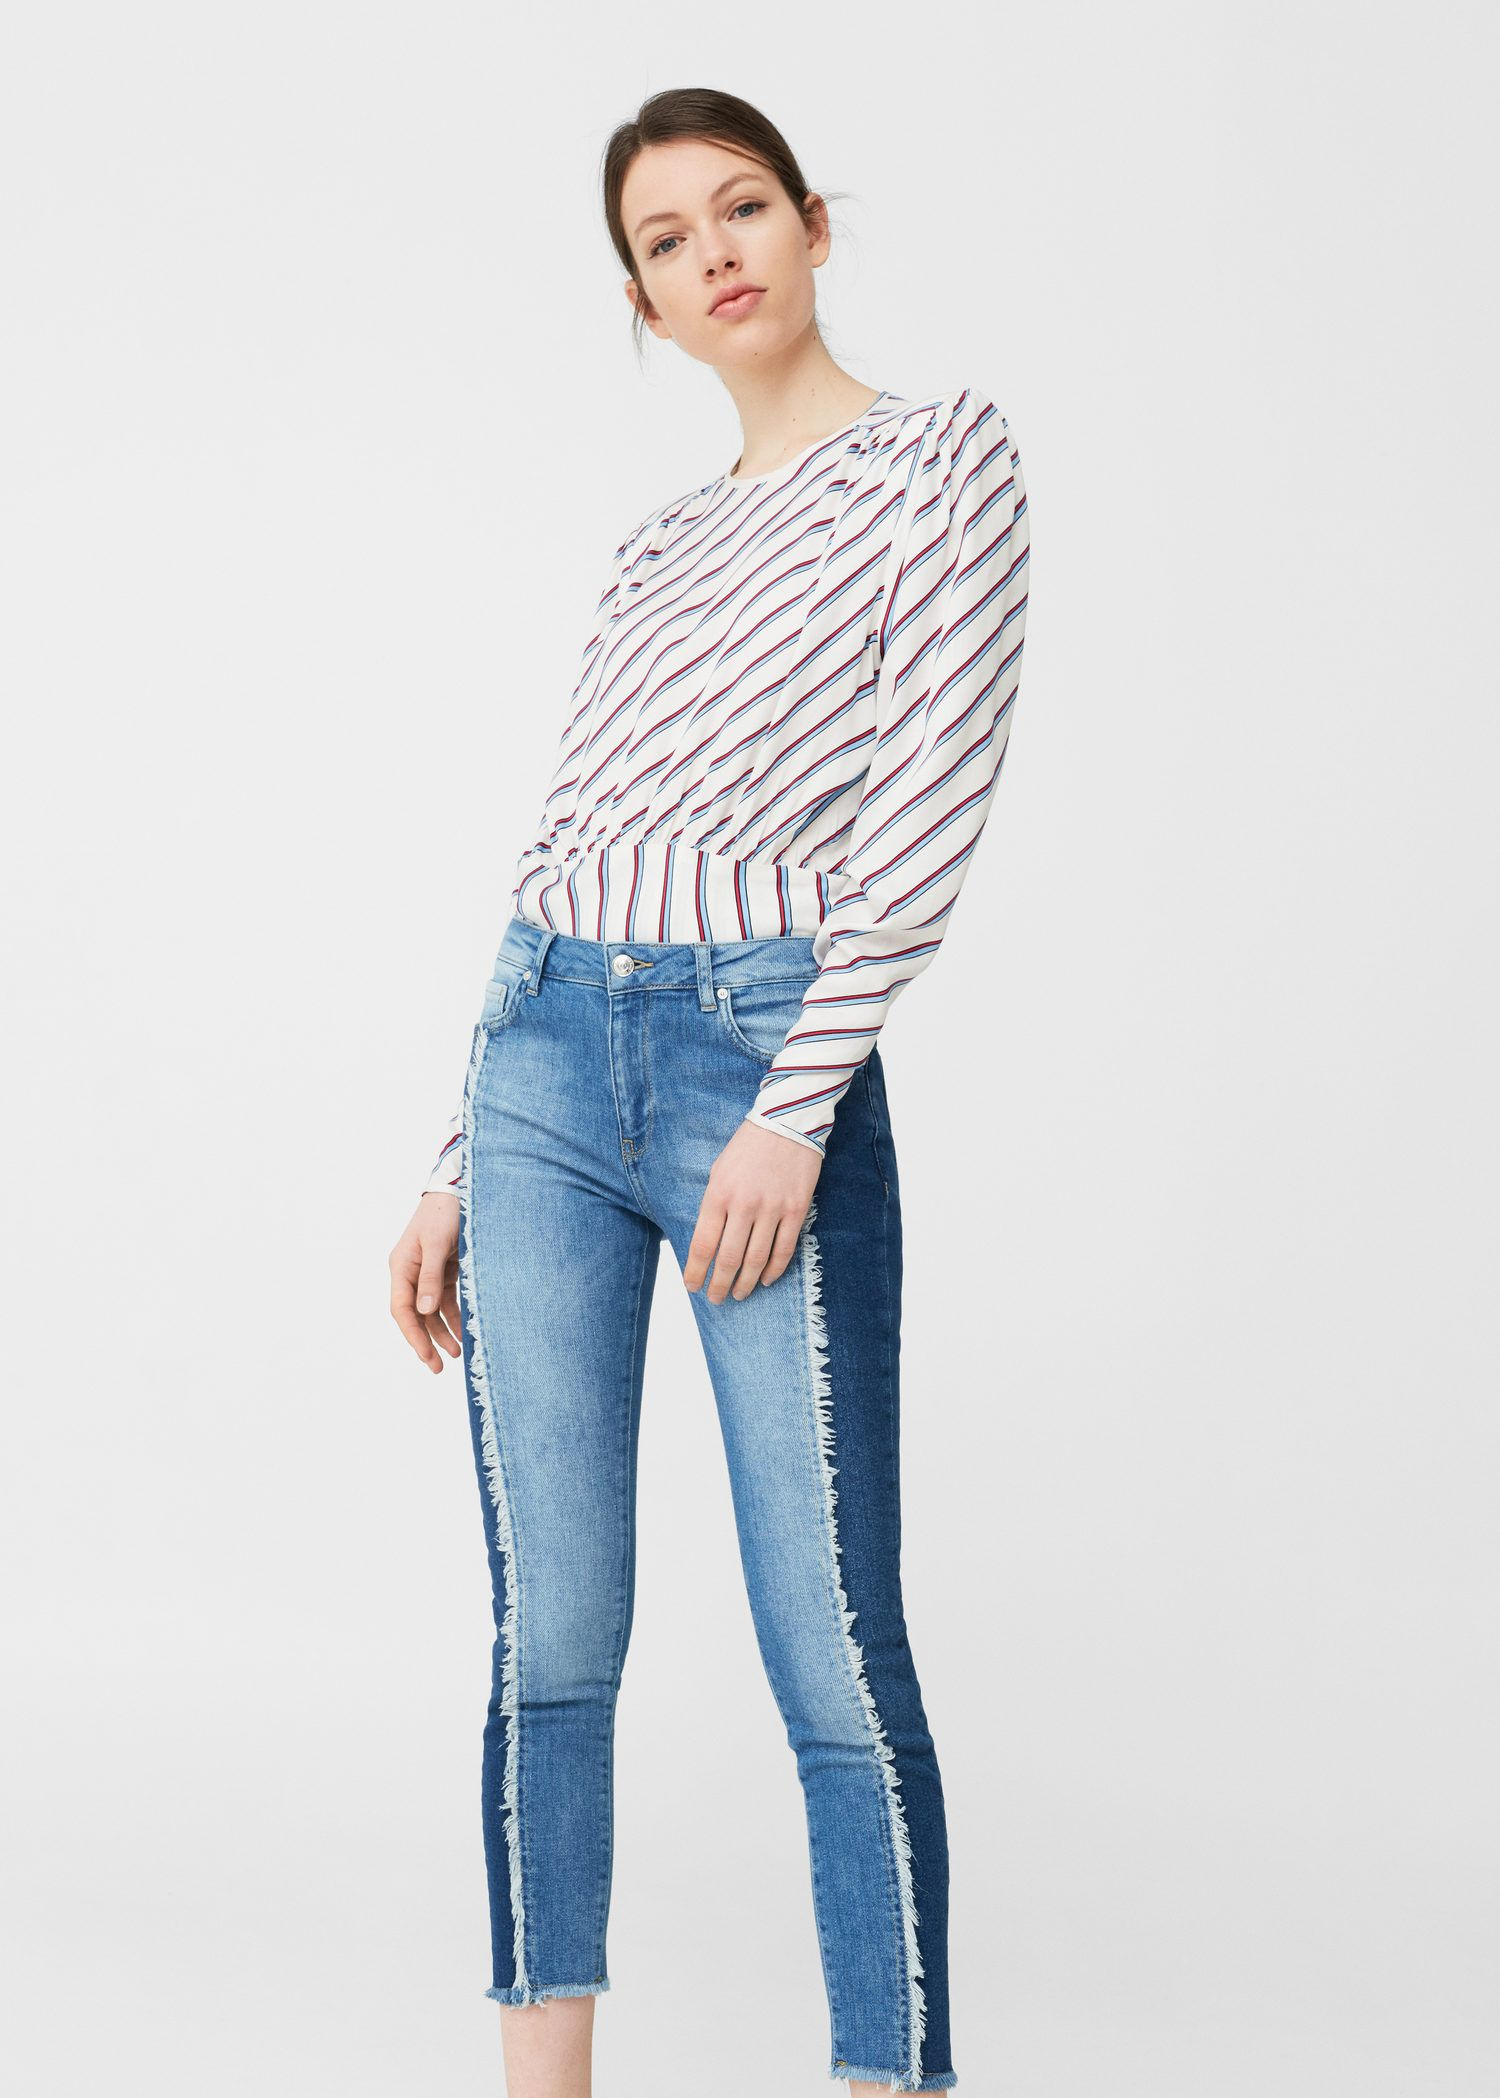 Jeans Relaxed Crop Contrast Mujer Mango Espana Women Jeans Denim Women Bollywood Outfits